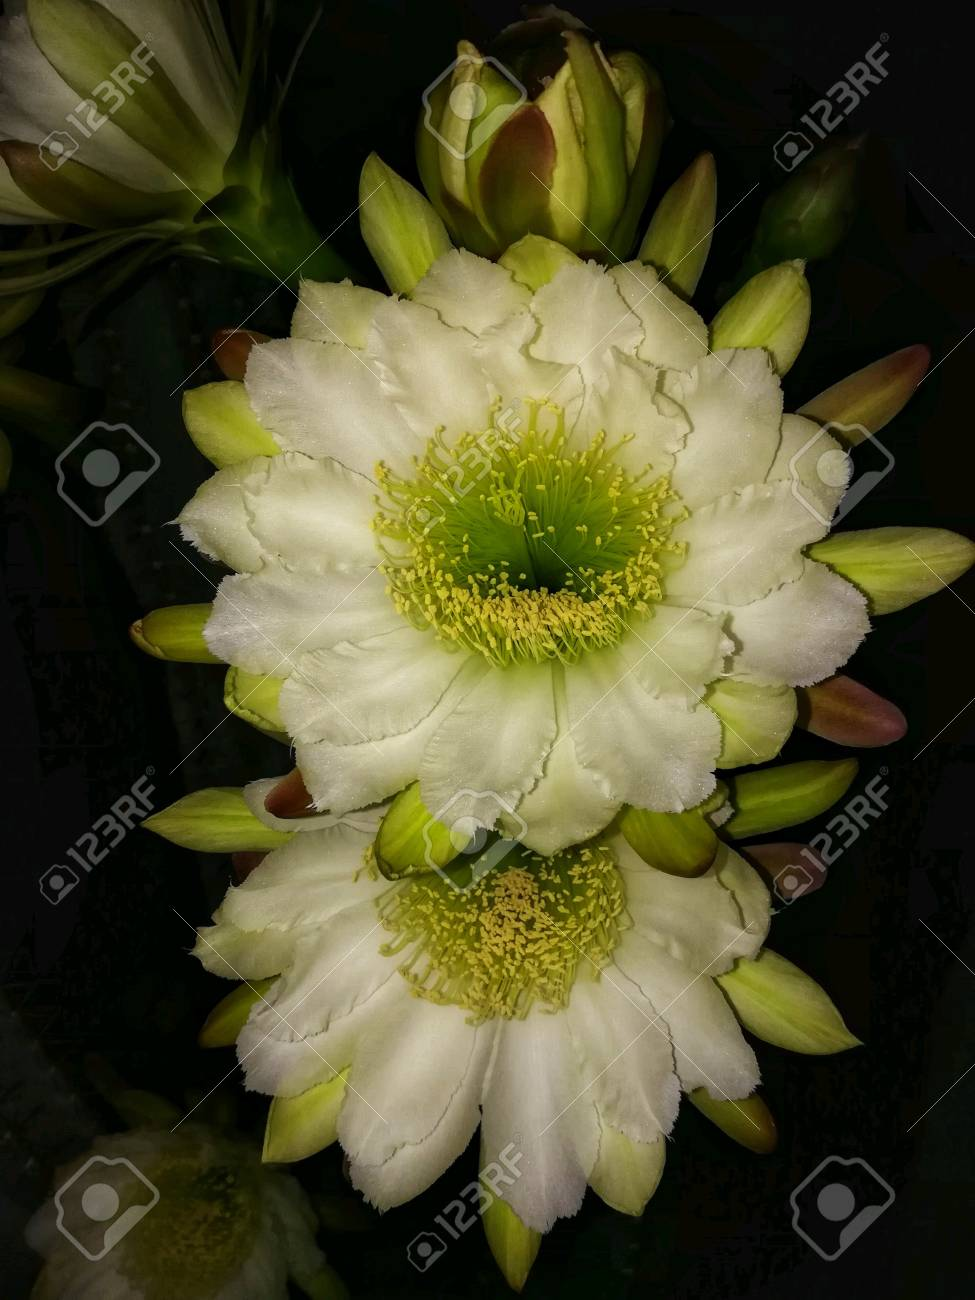 White Night Blooming Cactus Flowers Fully Open Stock Photo Picture